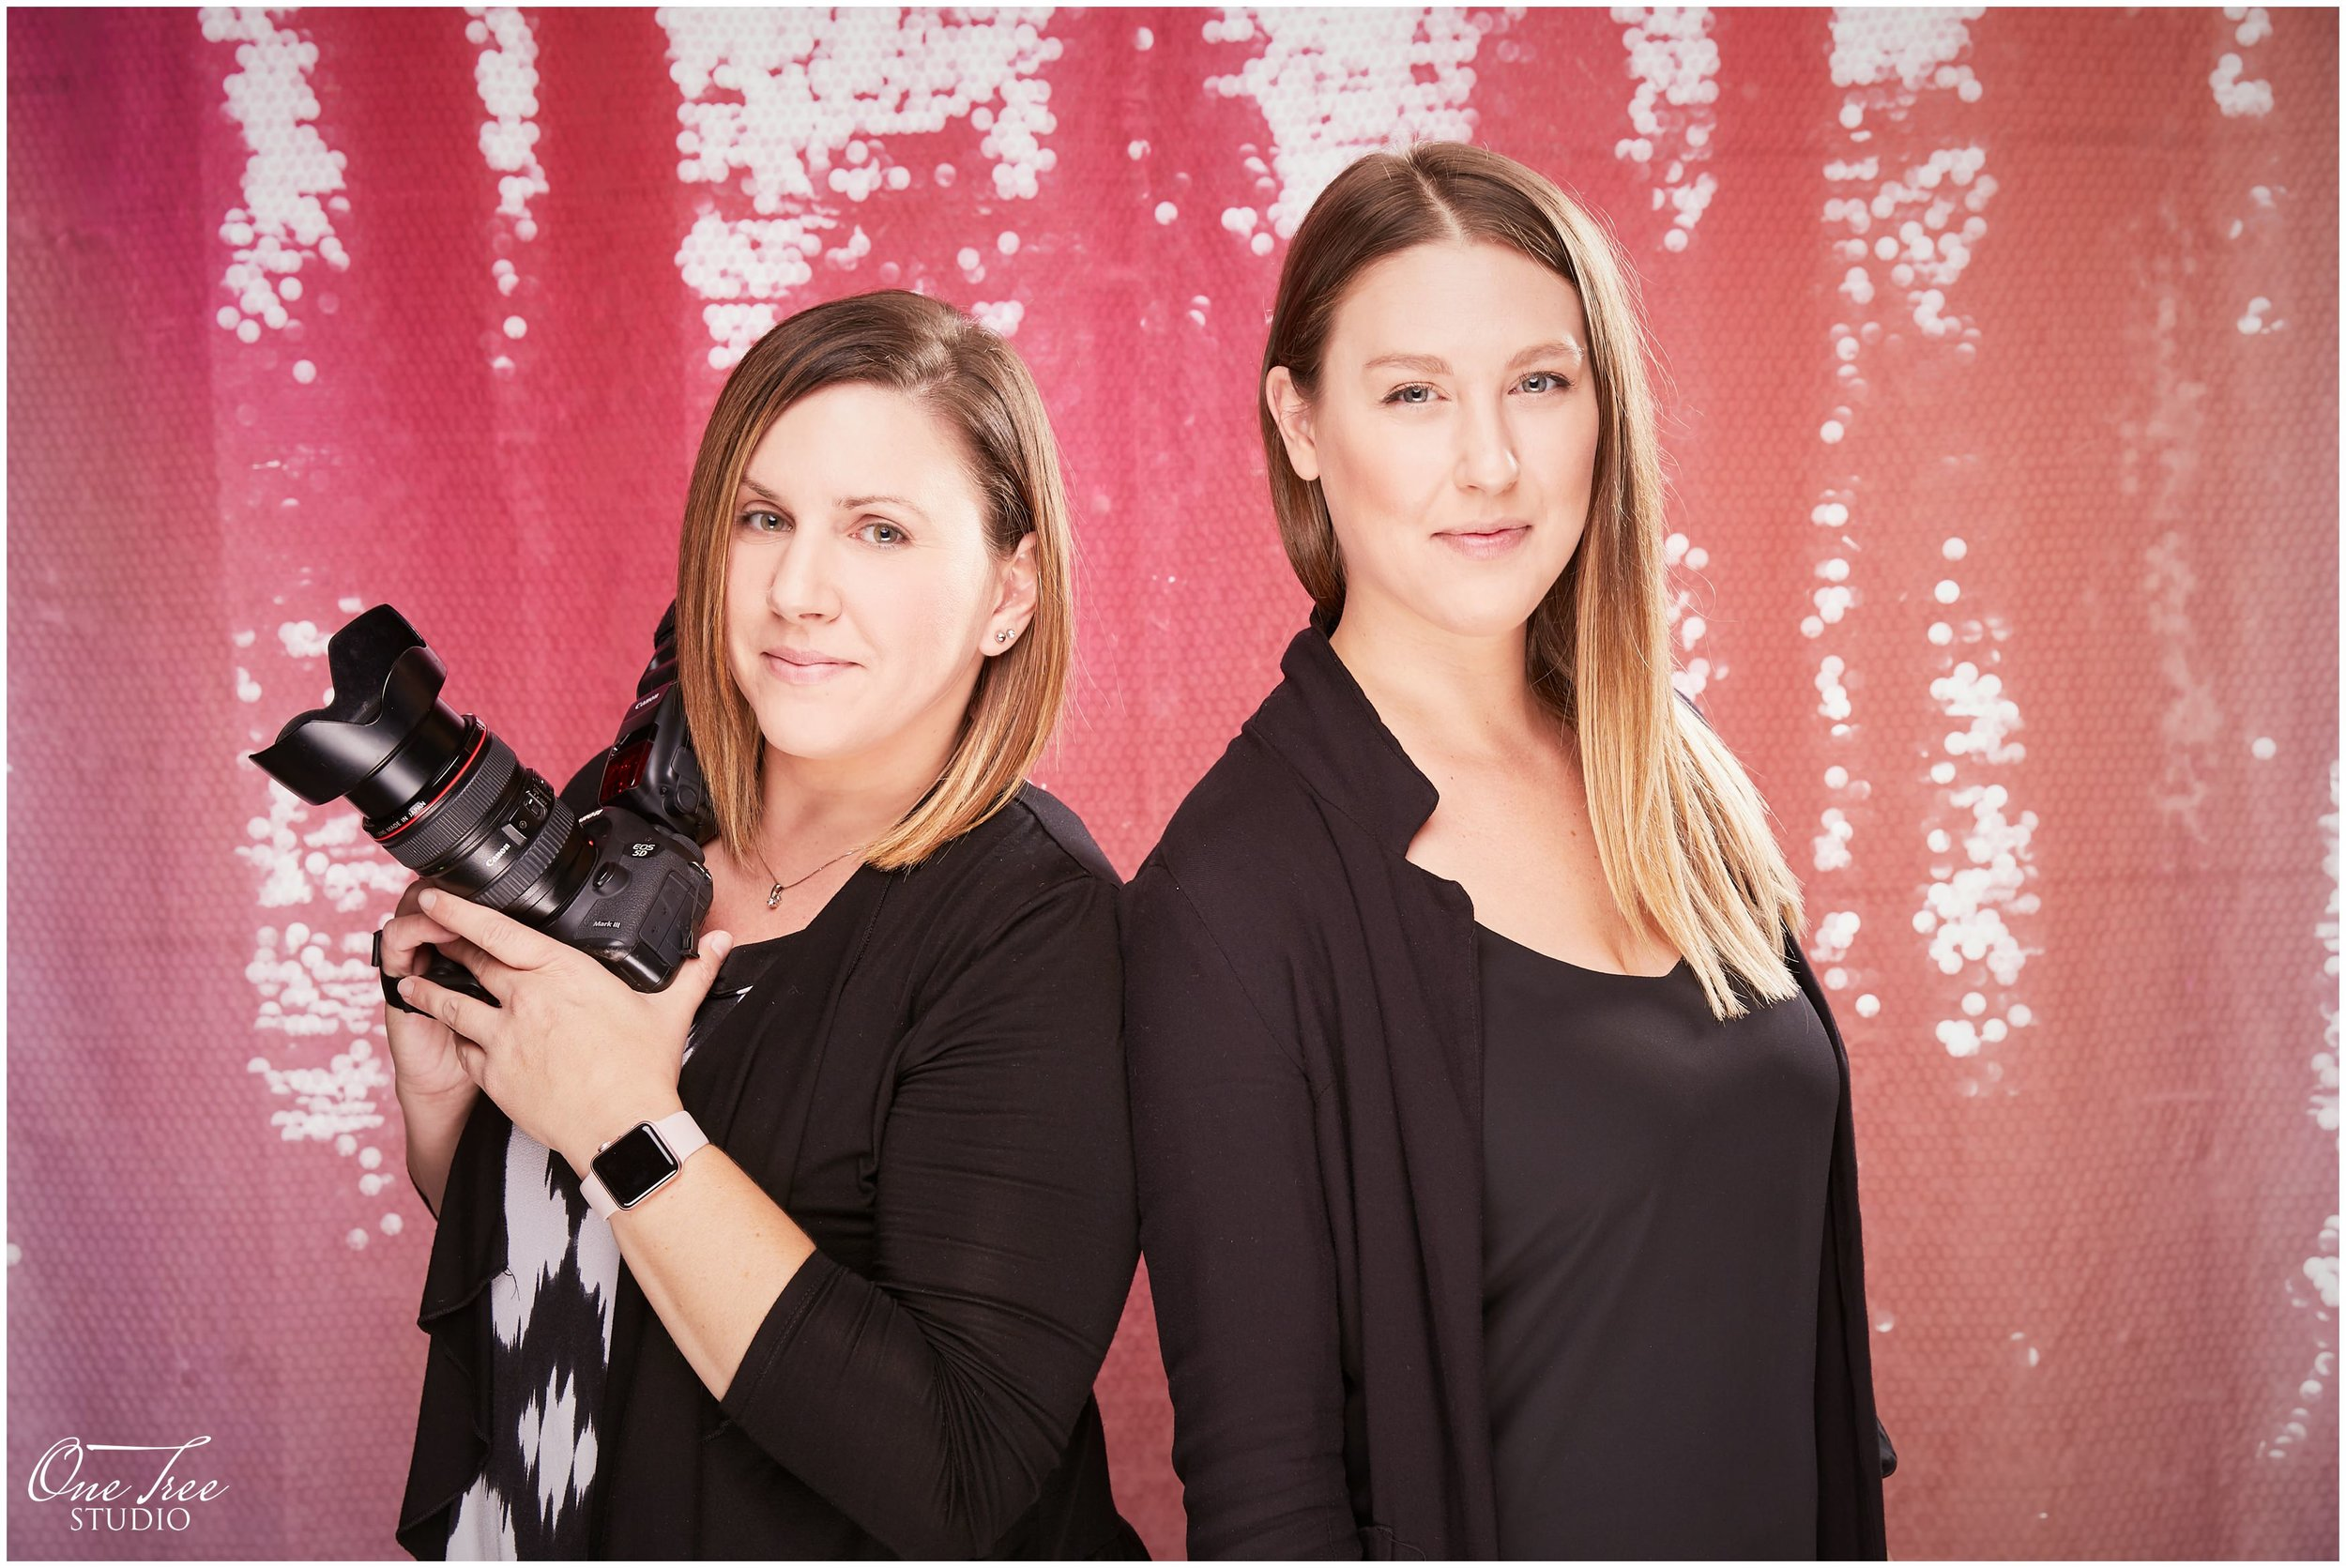 Markham Breast Health Centre Photo Booth with Photographers